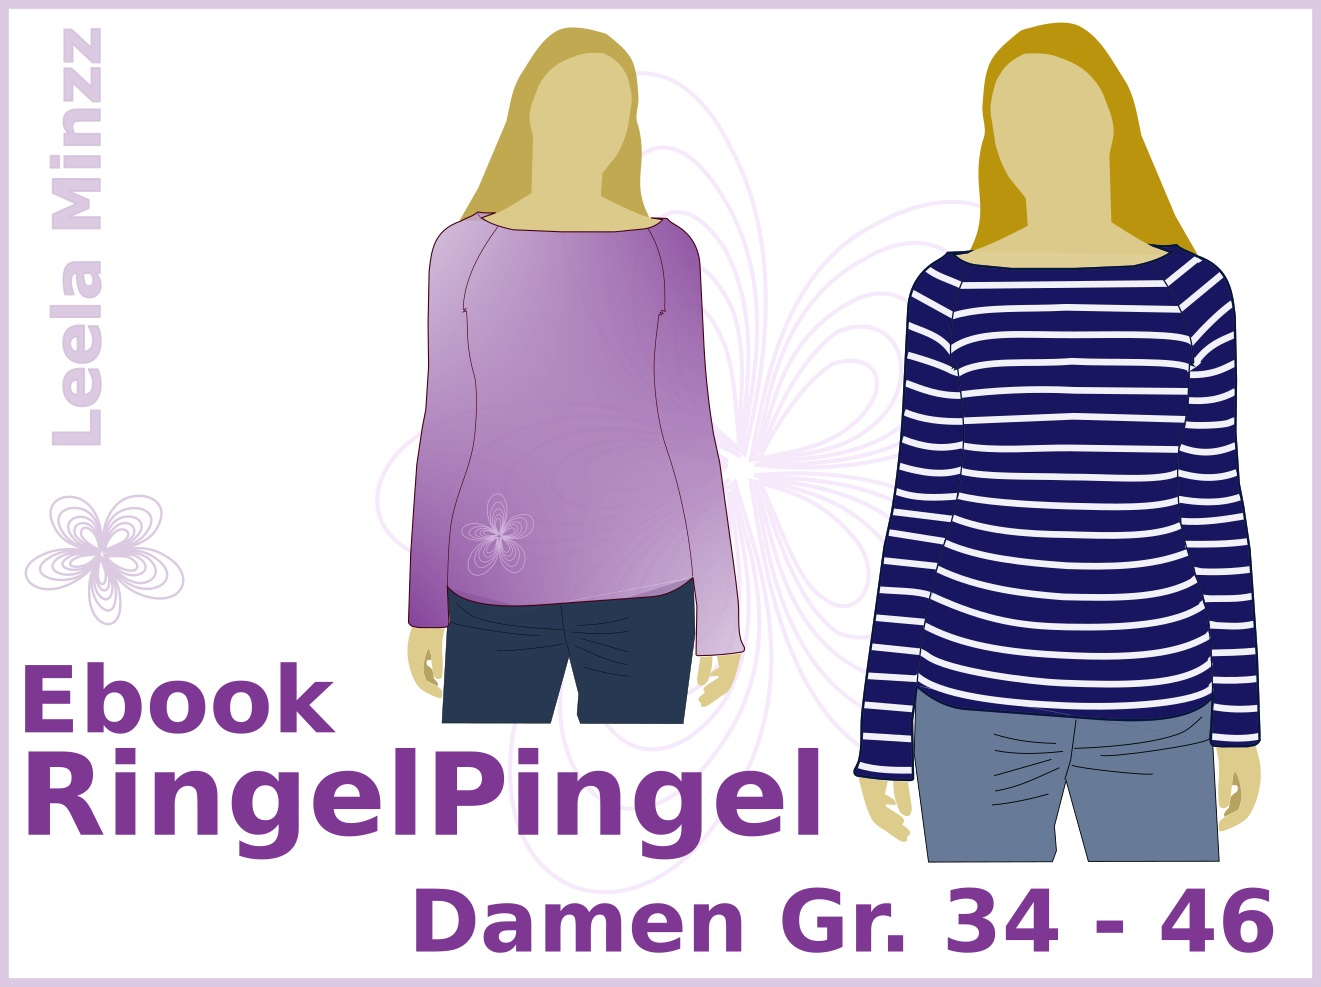 Ebook RingelPingel Damen